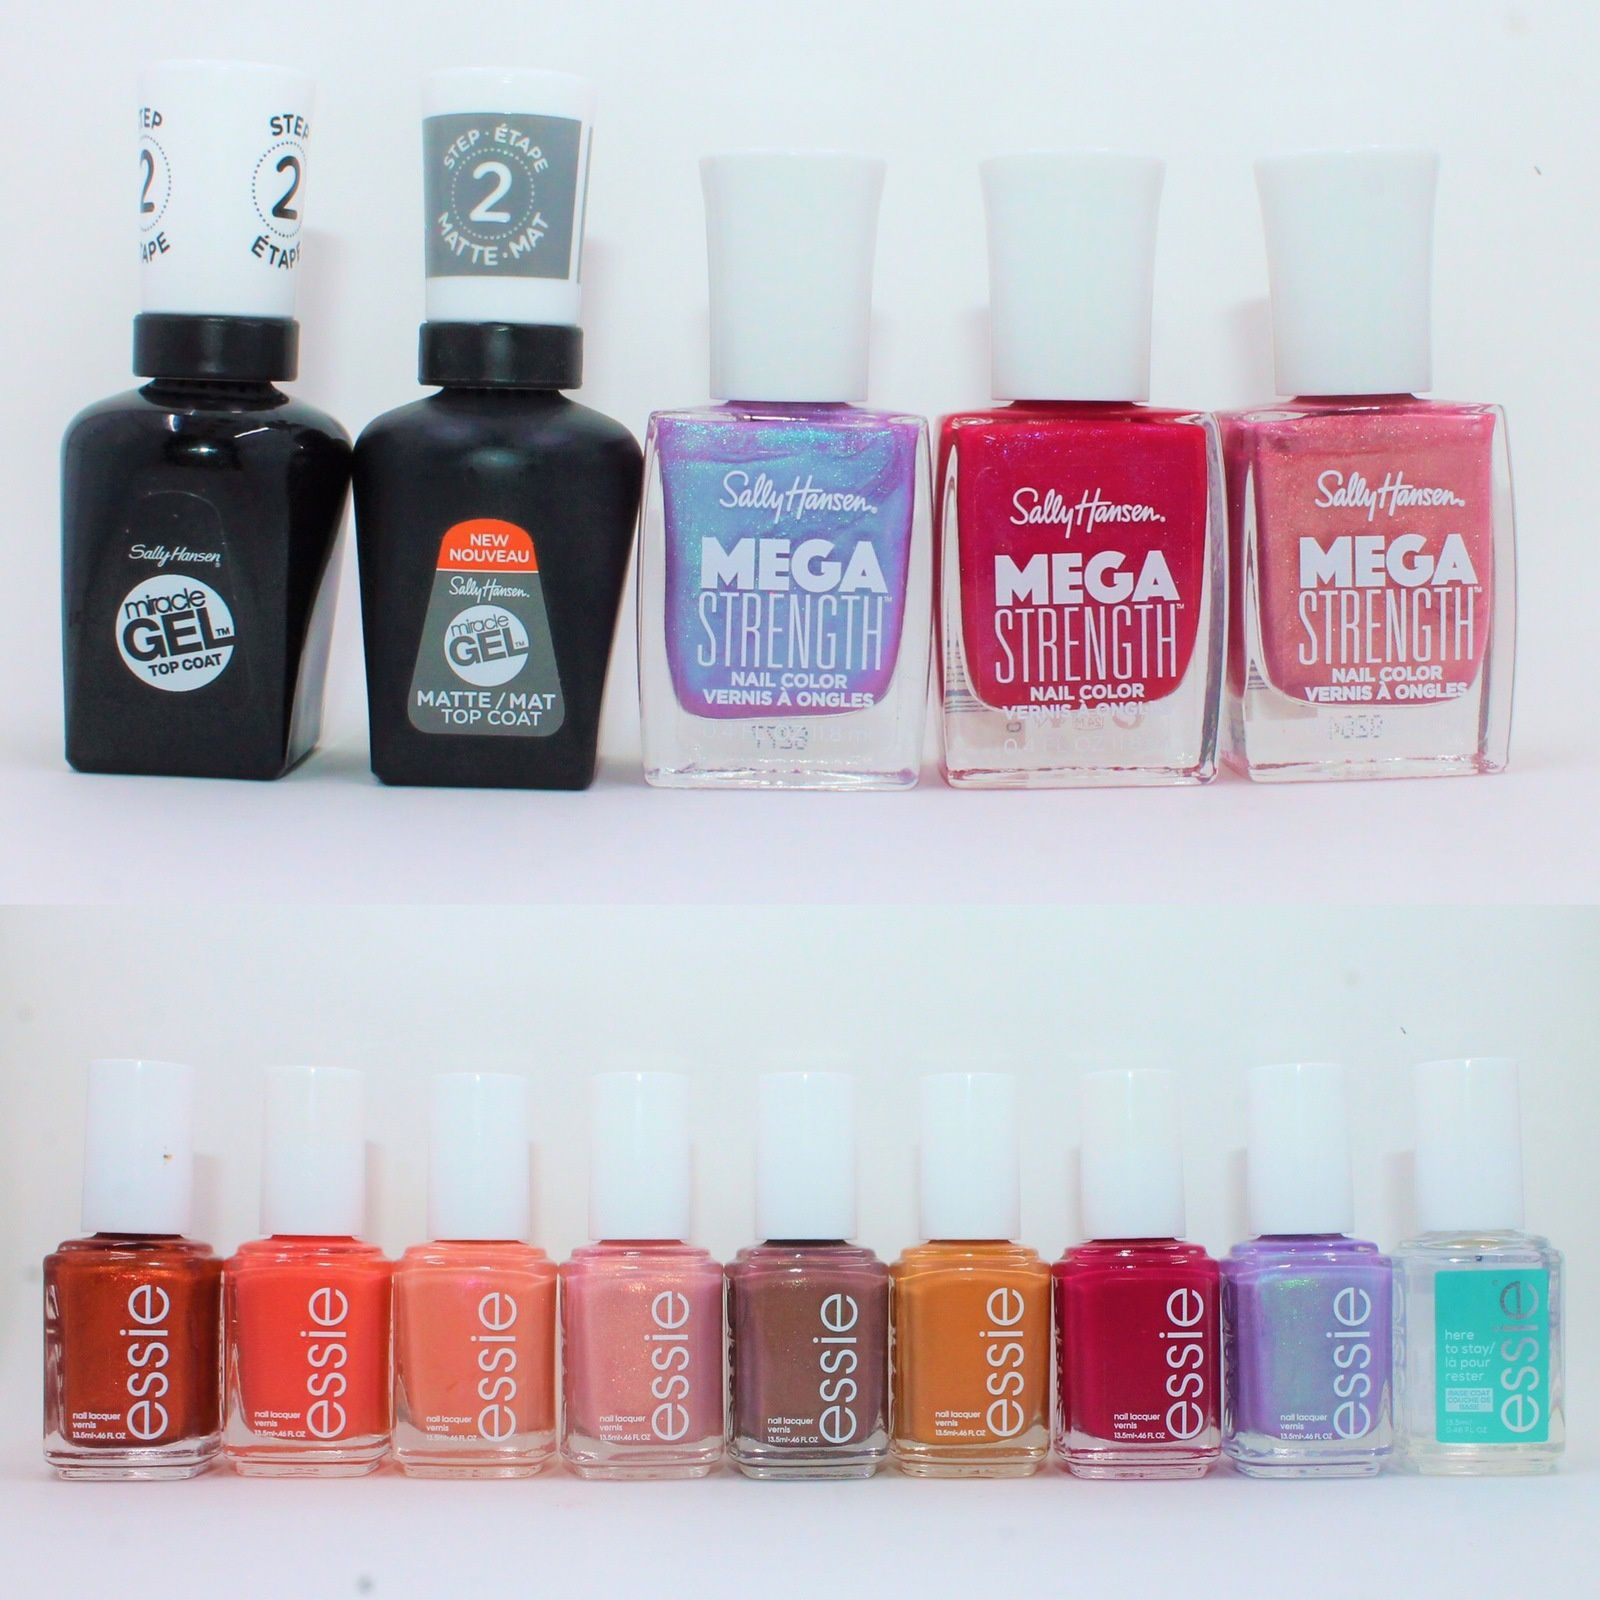 Sally Hansen Gel Top Coat (Shiny and Matte), Persis-tint, Slay All Day, Rise Up. Essie Say It Ain't Soho, Fondant of You, Pinkies Out, A Touch of Sugar, Teacup Half Full, Fall for NYC, Haute in the Heat, Tiers of Joy, Here to Stay base Coat.